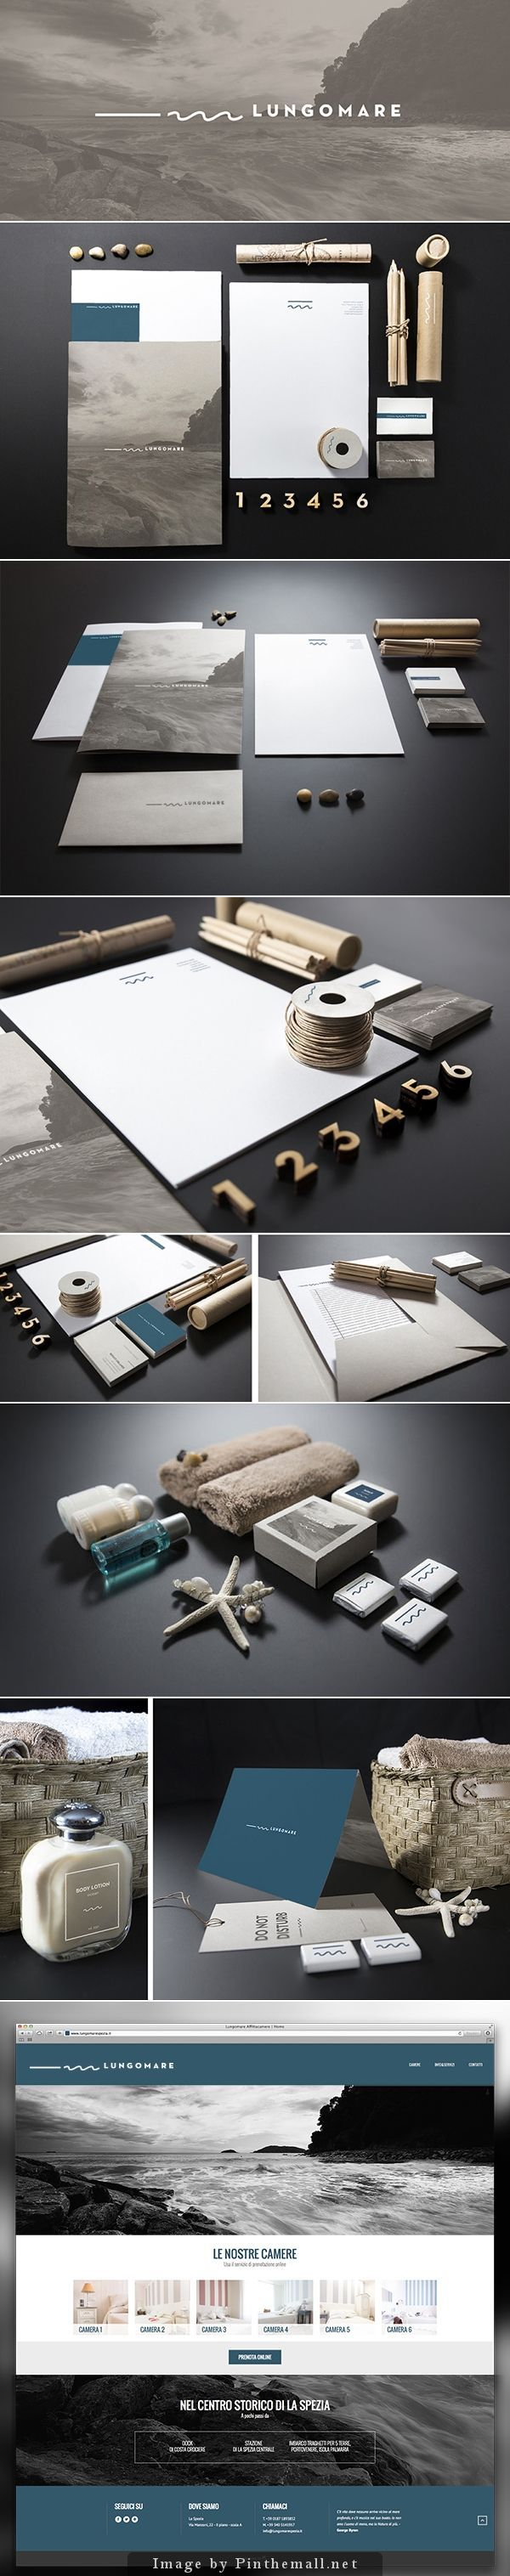 Lungomare: Branding: Identity: Color Scheme: Packaging: Colateral